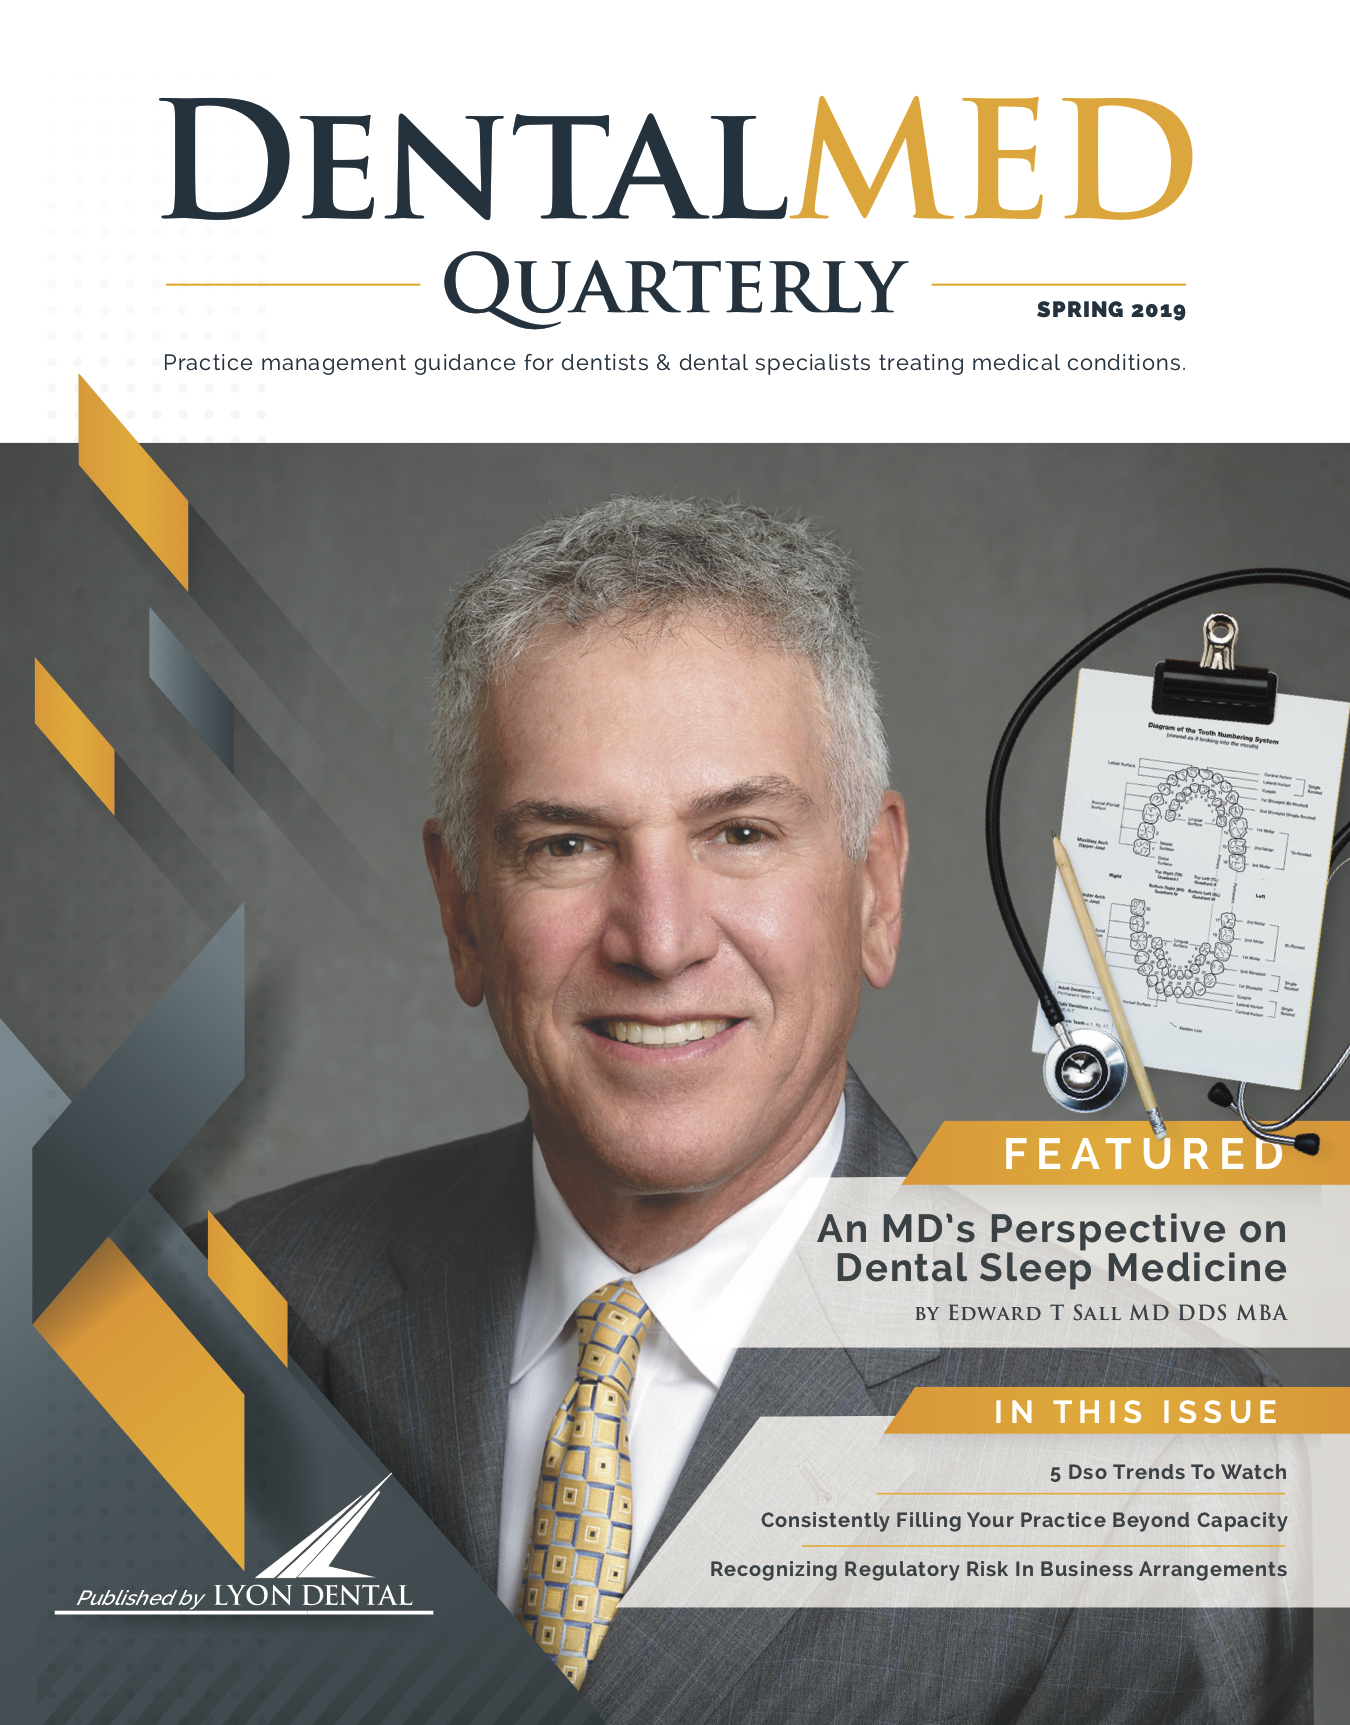 DentalMEDQuarterly Cover-Front-DrSall.jpg